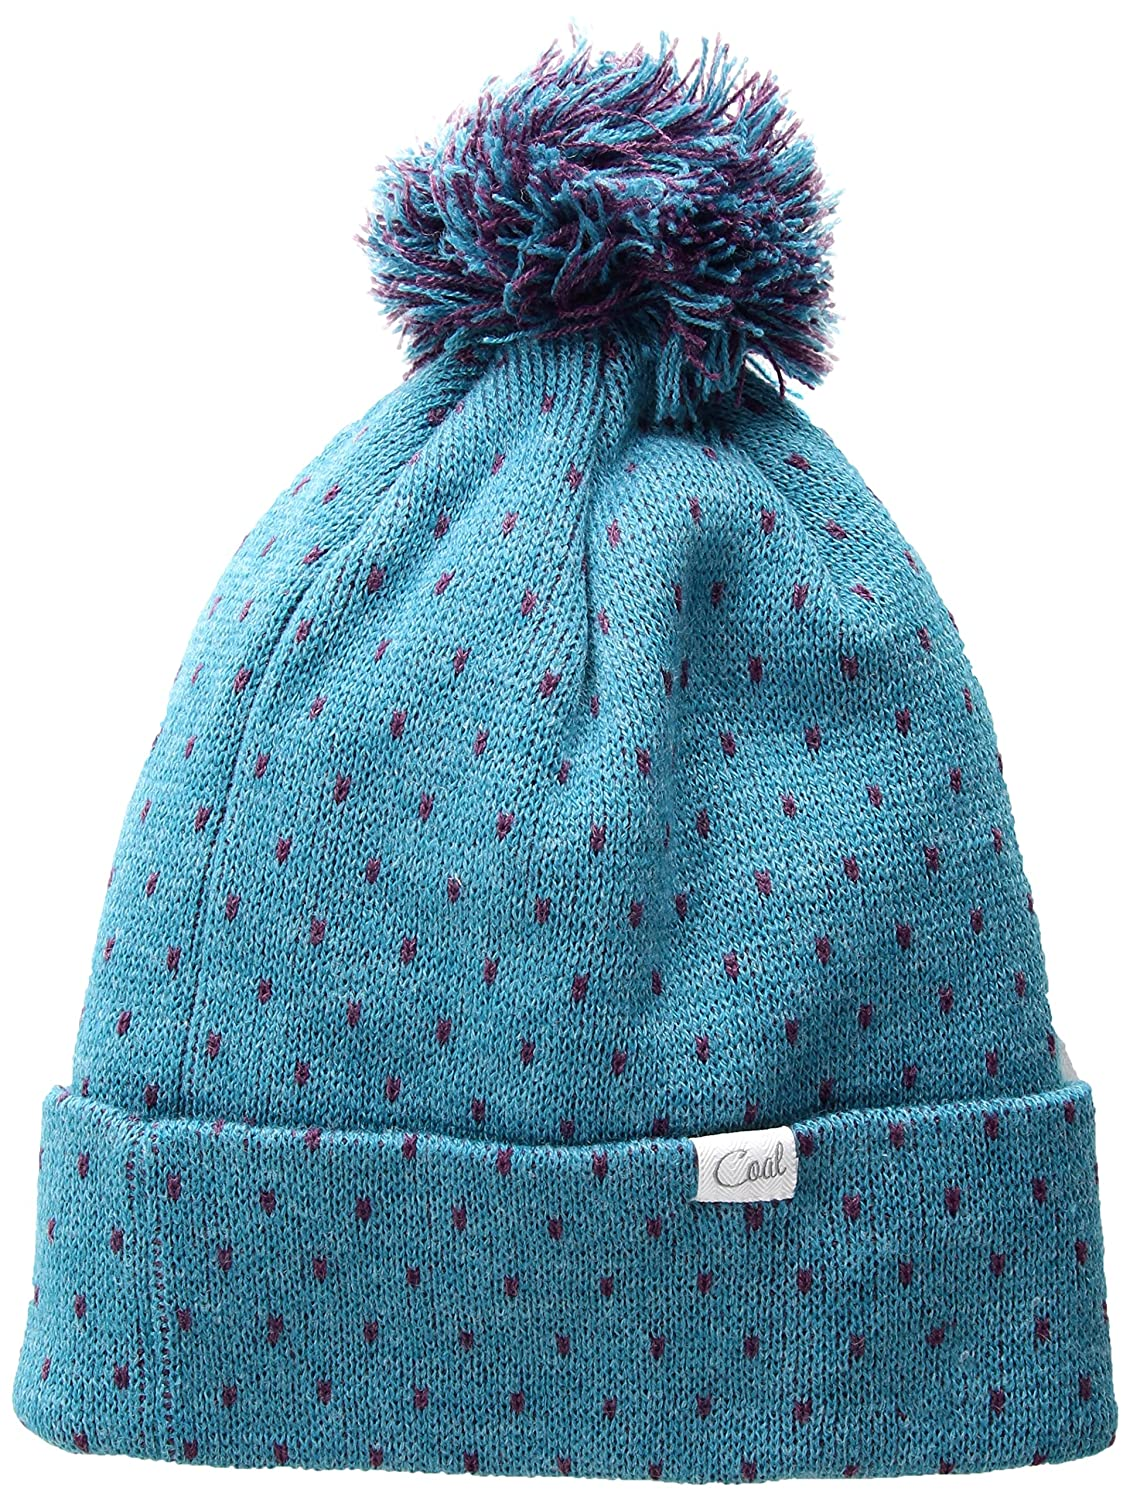 0a17620303d Coal Women s The Dottie Cuffed Beanie Pom